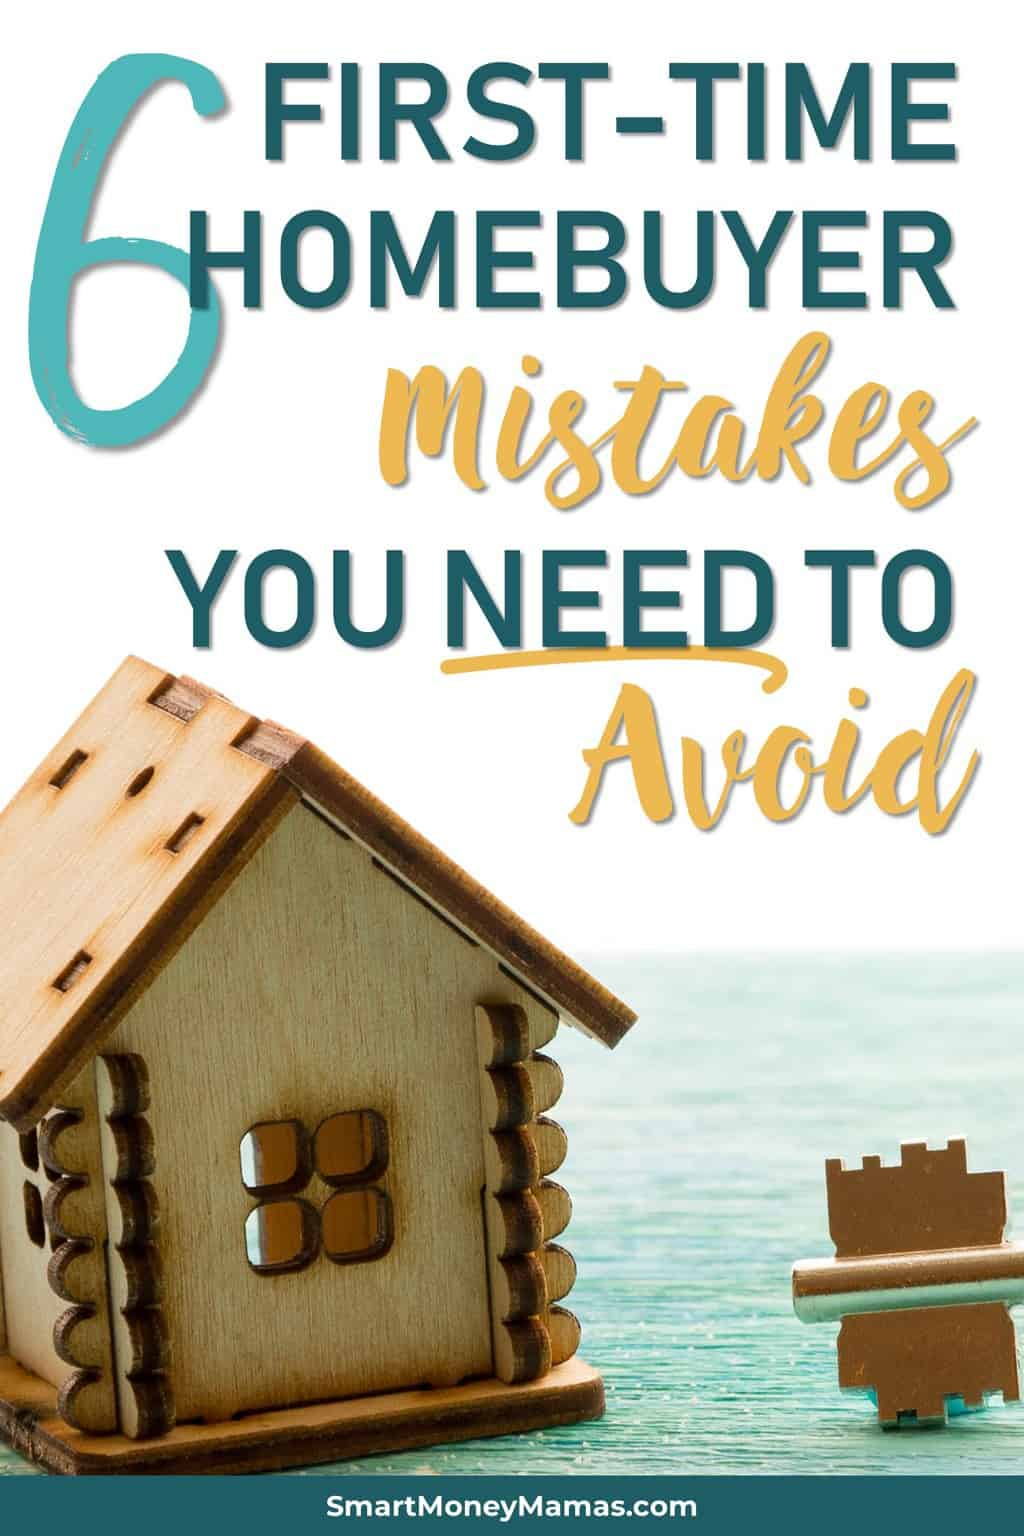 Homebuying is a complex process, but there are a few major mistakes you can avoid with a little planning to make it much less stressful. Discover what you need to do - directly from an experienced real estate agent. #homeowner #realestate #firsttimehomebuyer #realtor